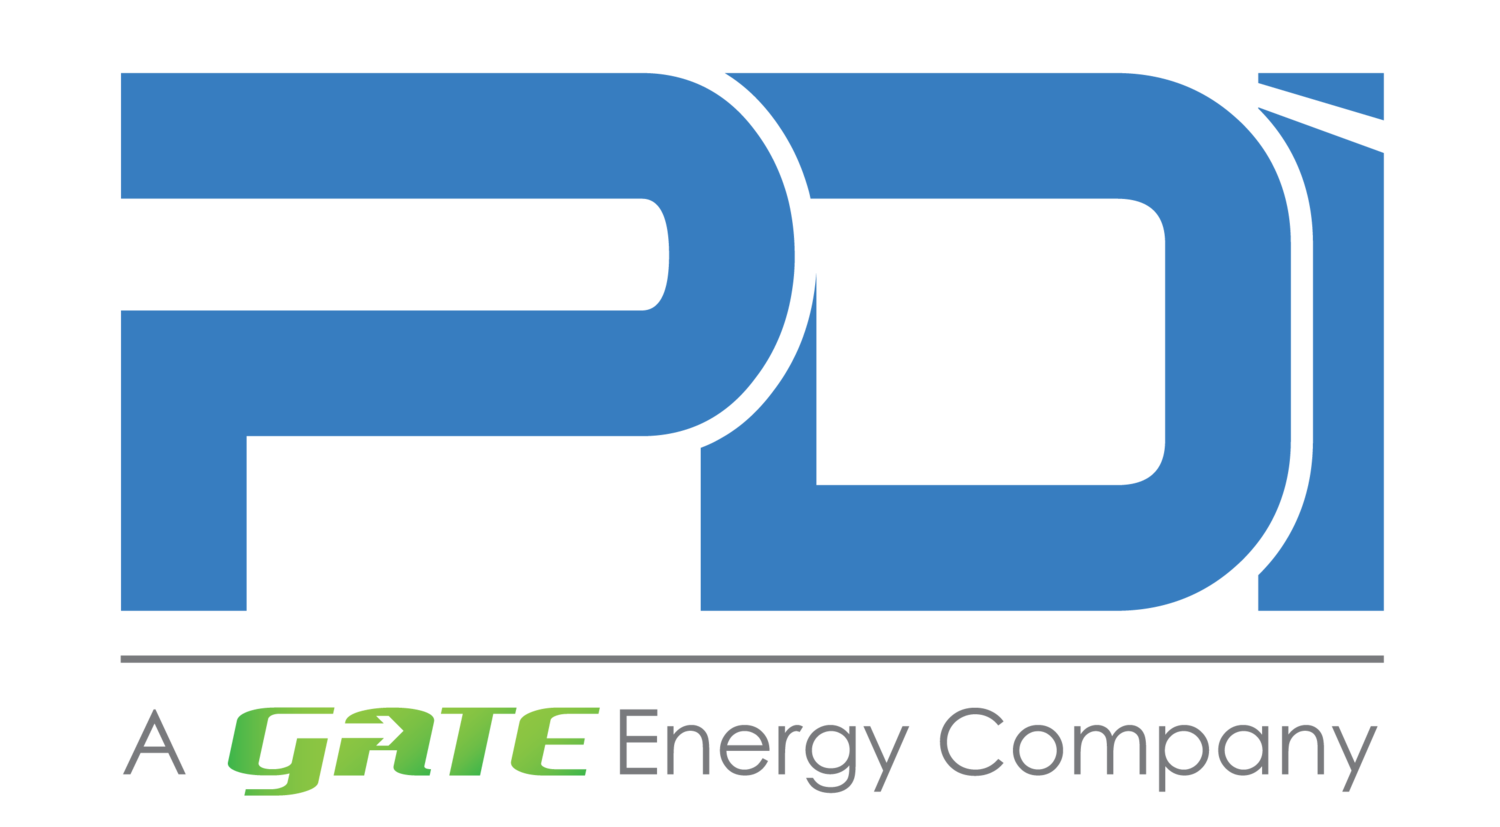 Drill clipart sound energy. Who we are pdi